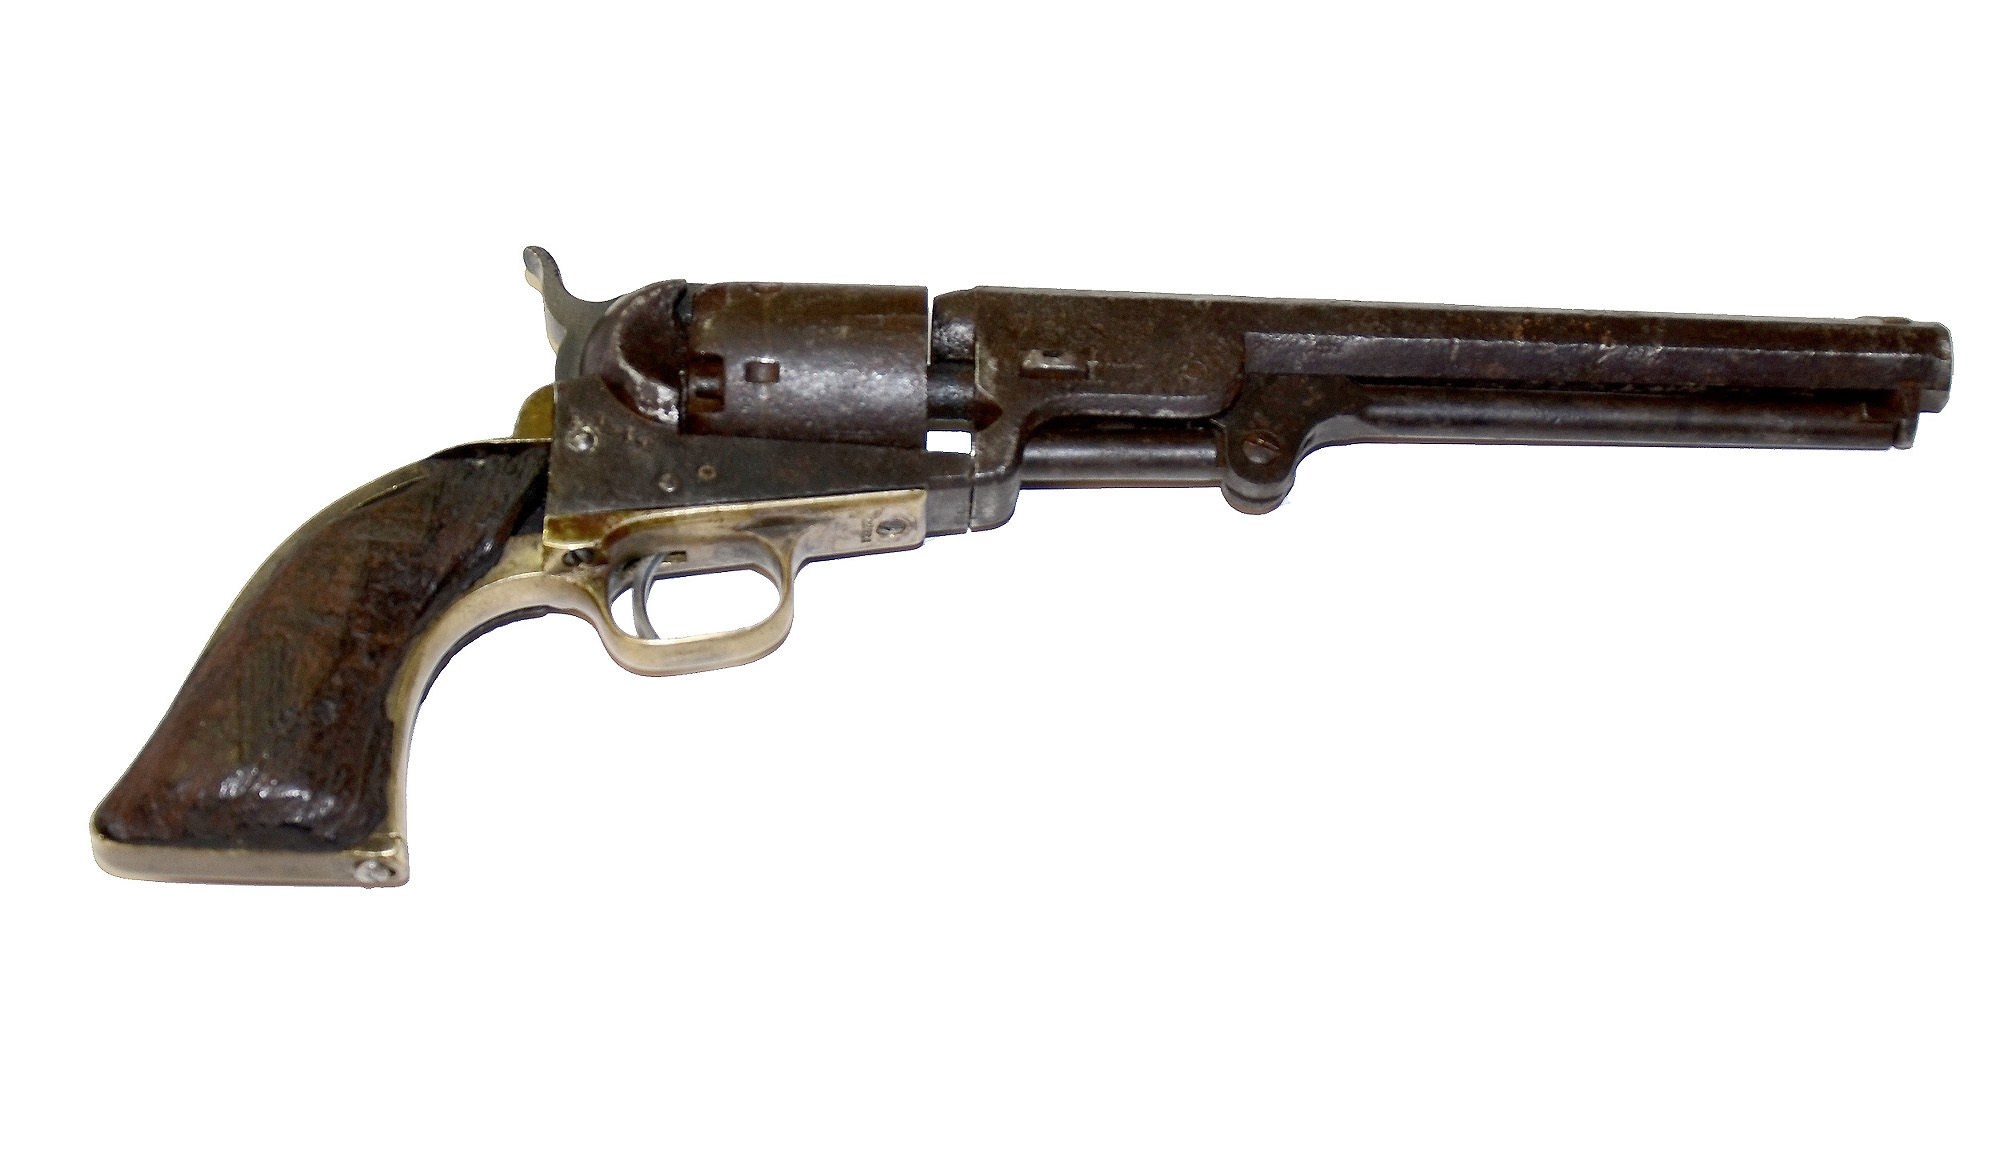 RICHMOND-RECOVERED M1851 NAVY COLT REVOLVER IN RELIC CONDITION, STILL WITH FIVE ROUNDS IN CHAMBER